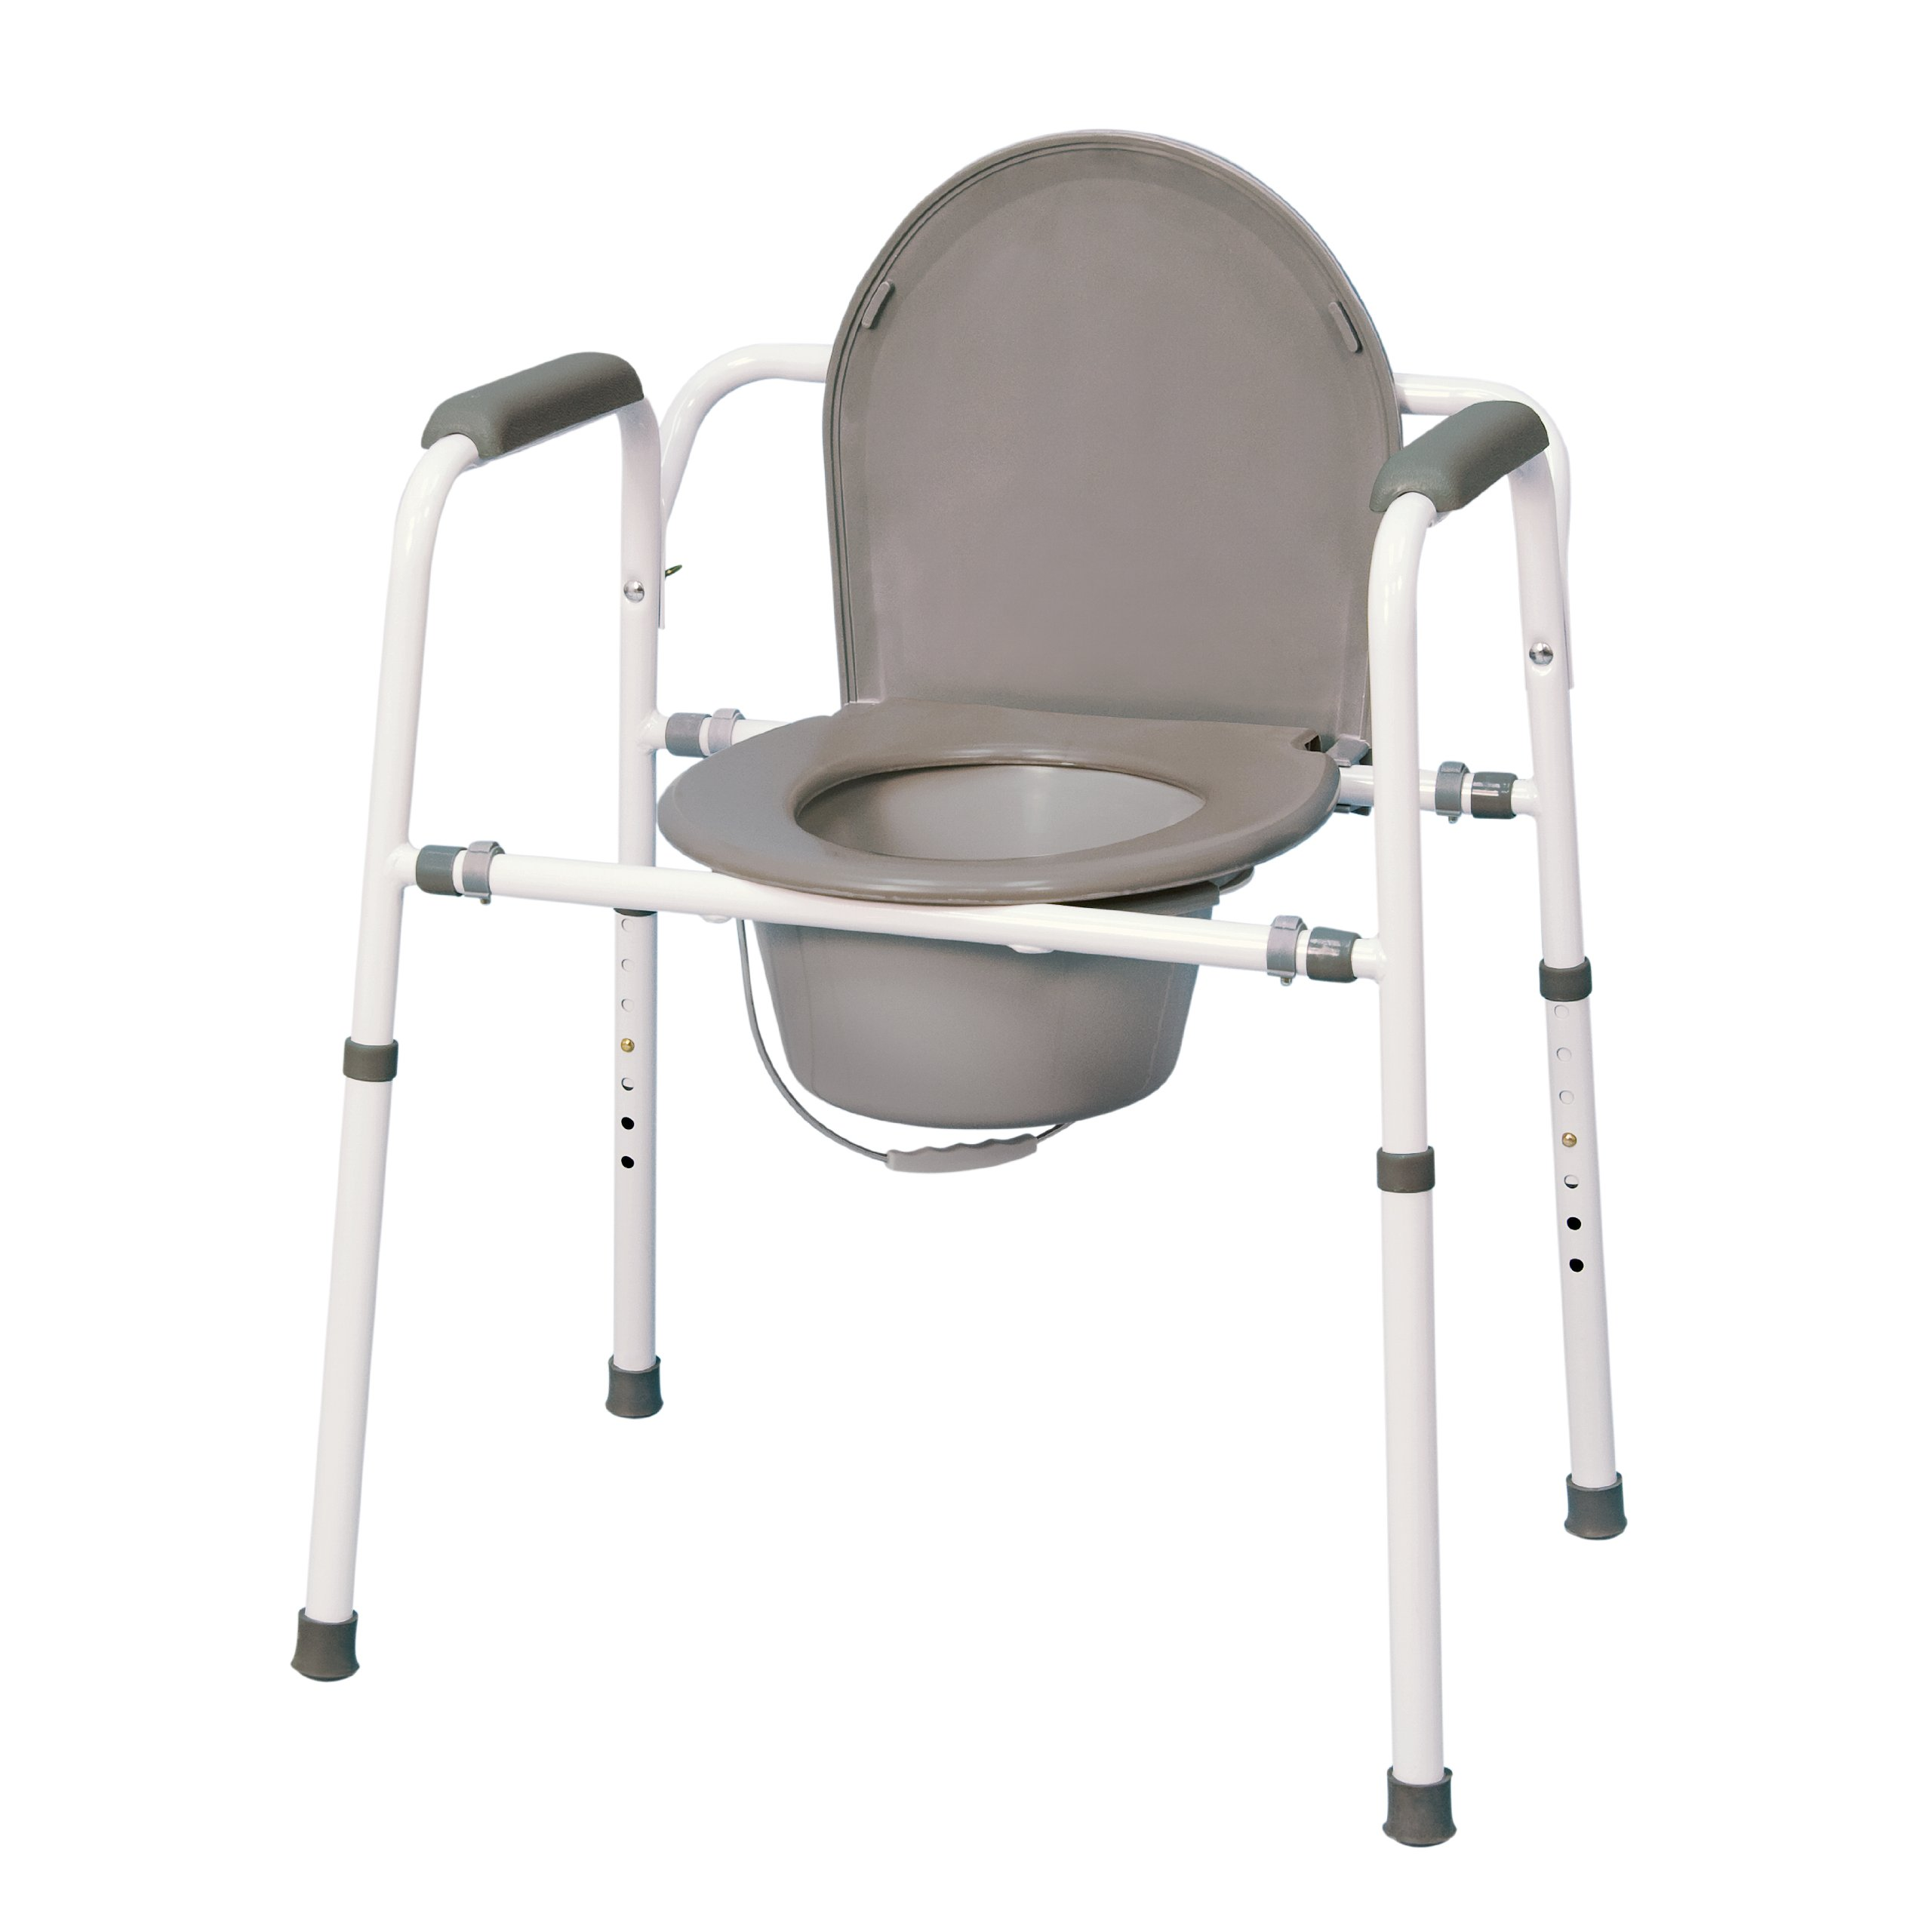 MedPro Homecare Commode Chair with Adjustable Height by MEDPRO